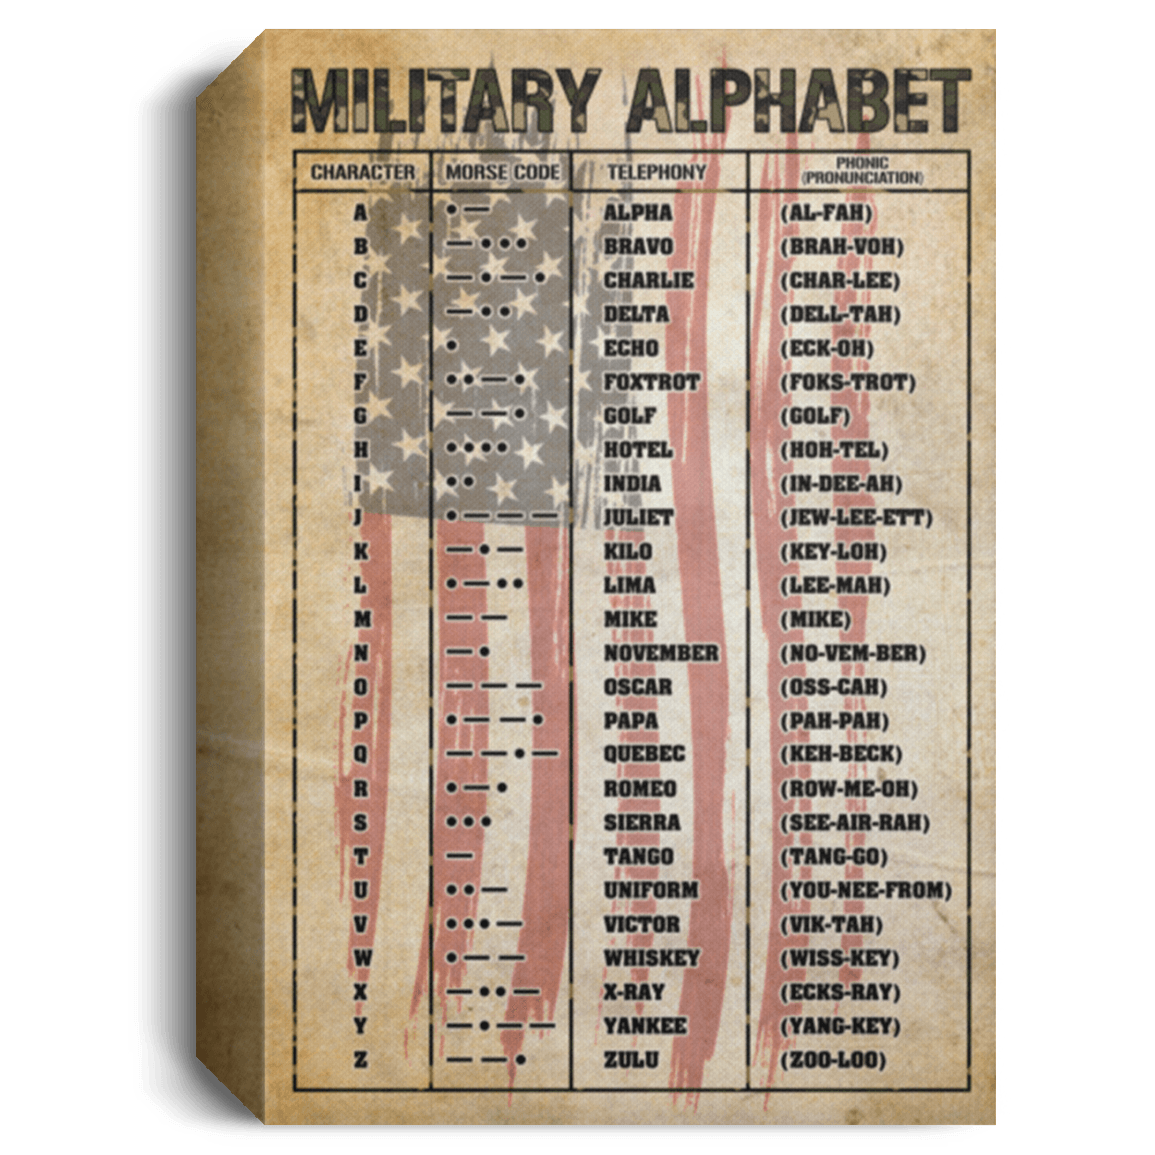 Military Phonetic Alphabet Military Alphabet Morse Gallery Wrapped Framed Canvas Cubebik